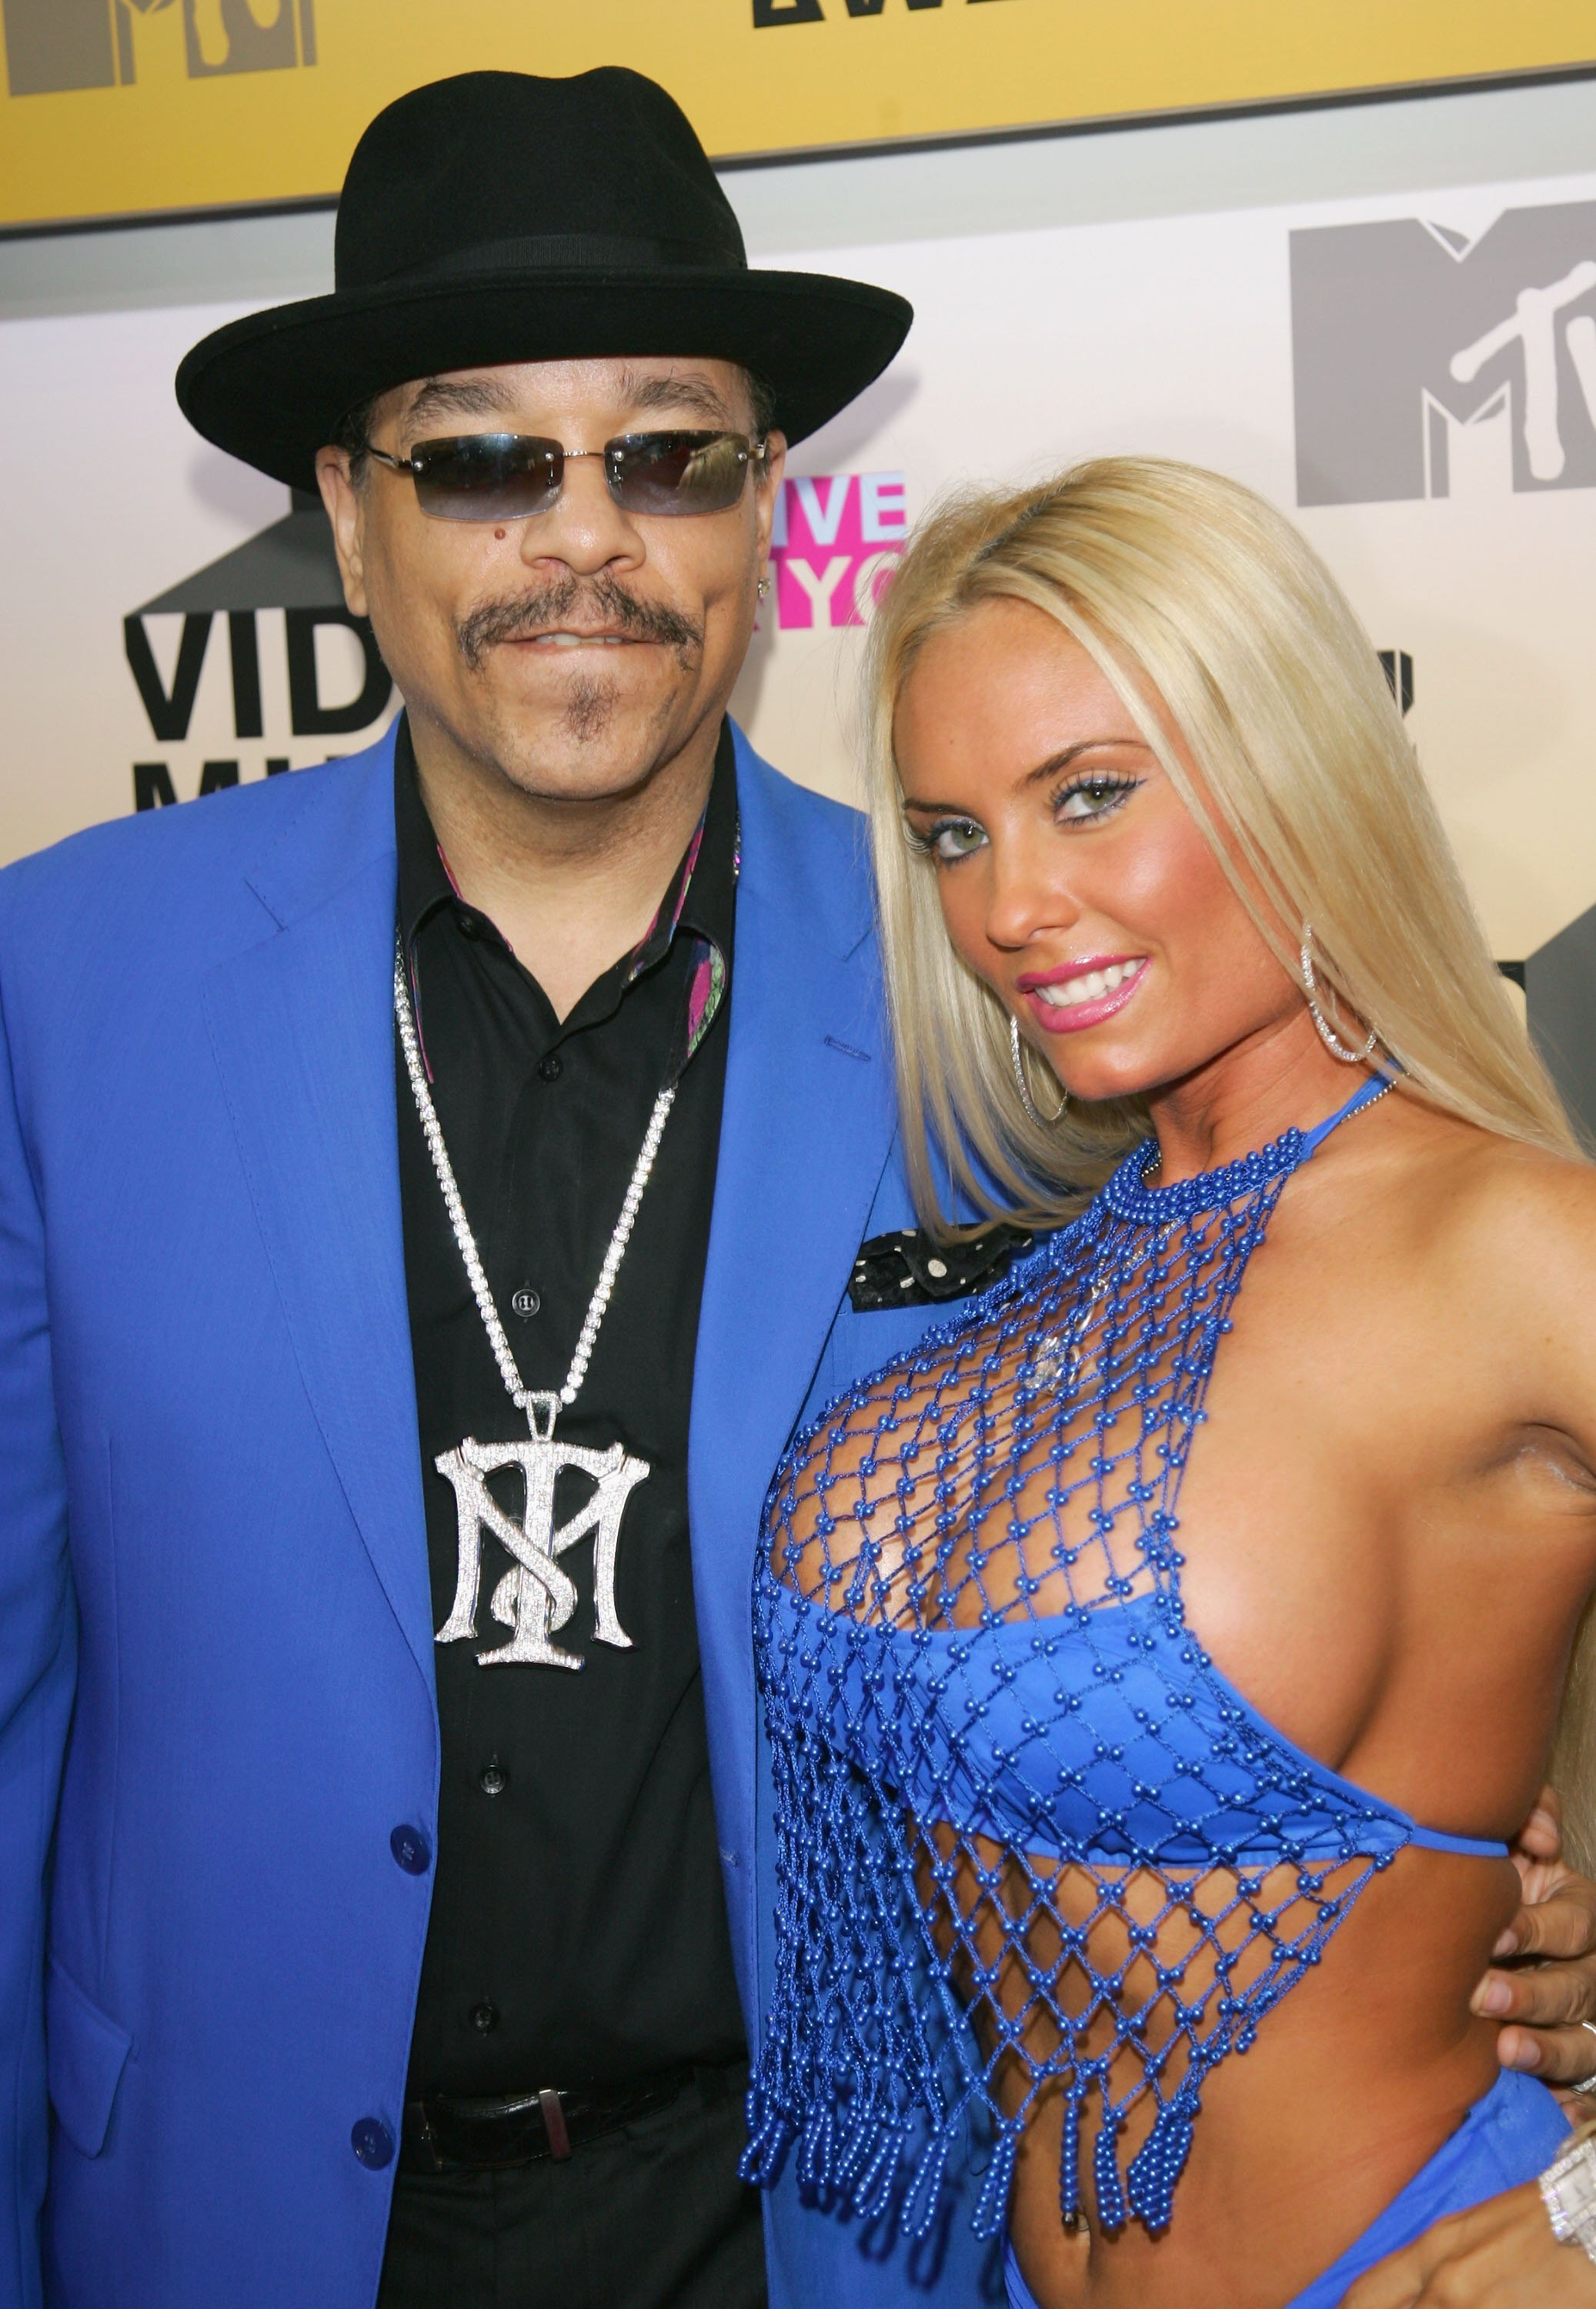 NEW YORK - AUGUST 31: Actor Ice-T and his wife Coco attends the 2006 MTV Video Music Awards at Radio City Music Hall August 31, 2006 in New York City. (Photo by Evan Agostini/Getty Images)